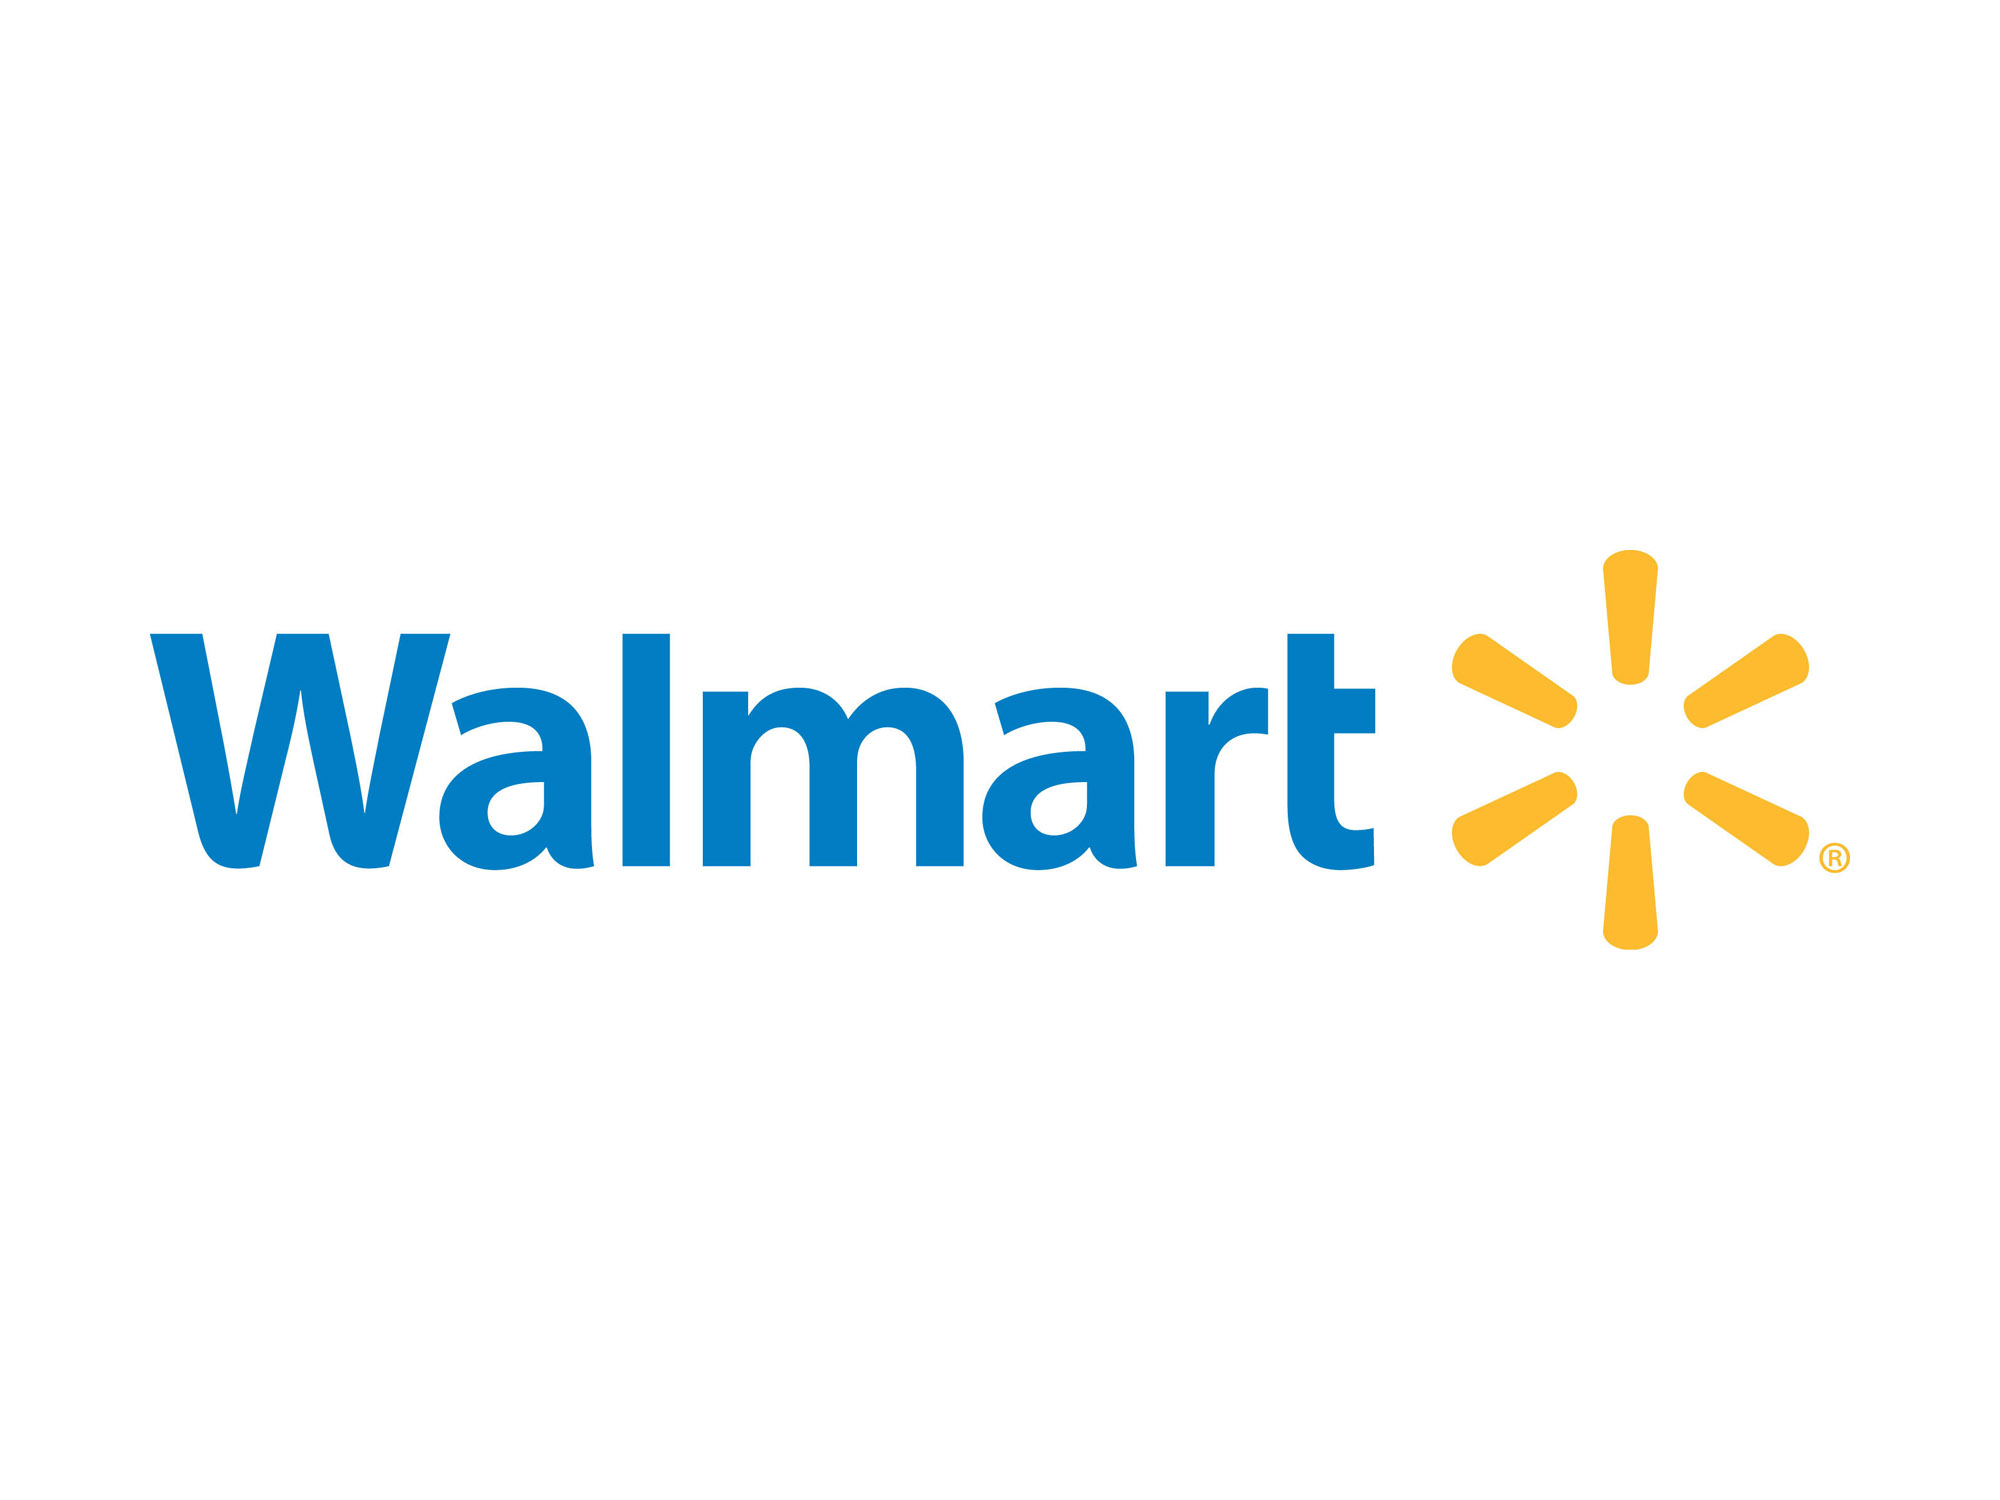 walmart logo logo brands for free hd 3d